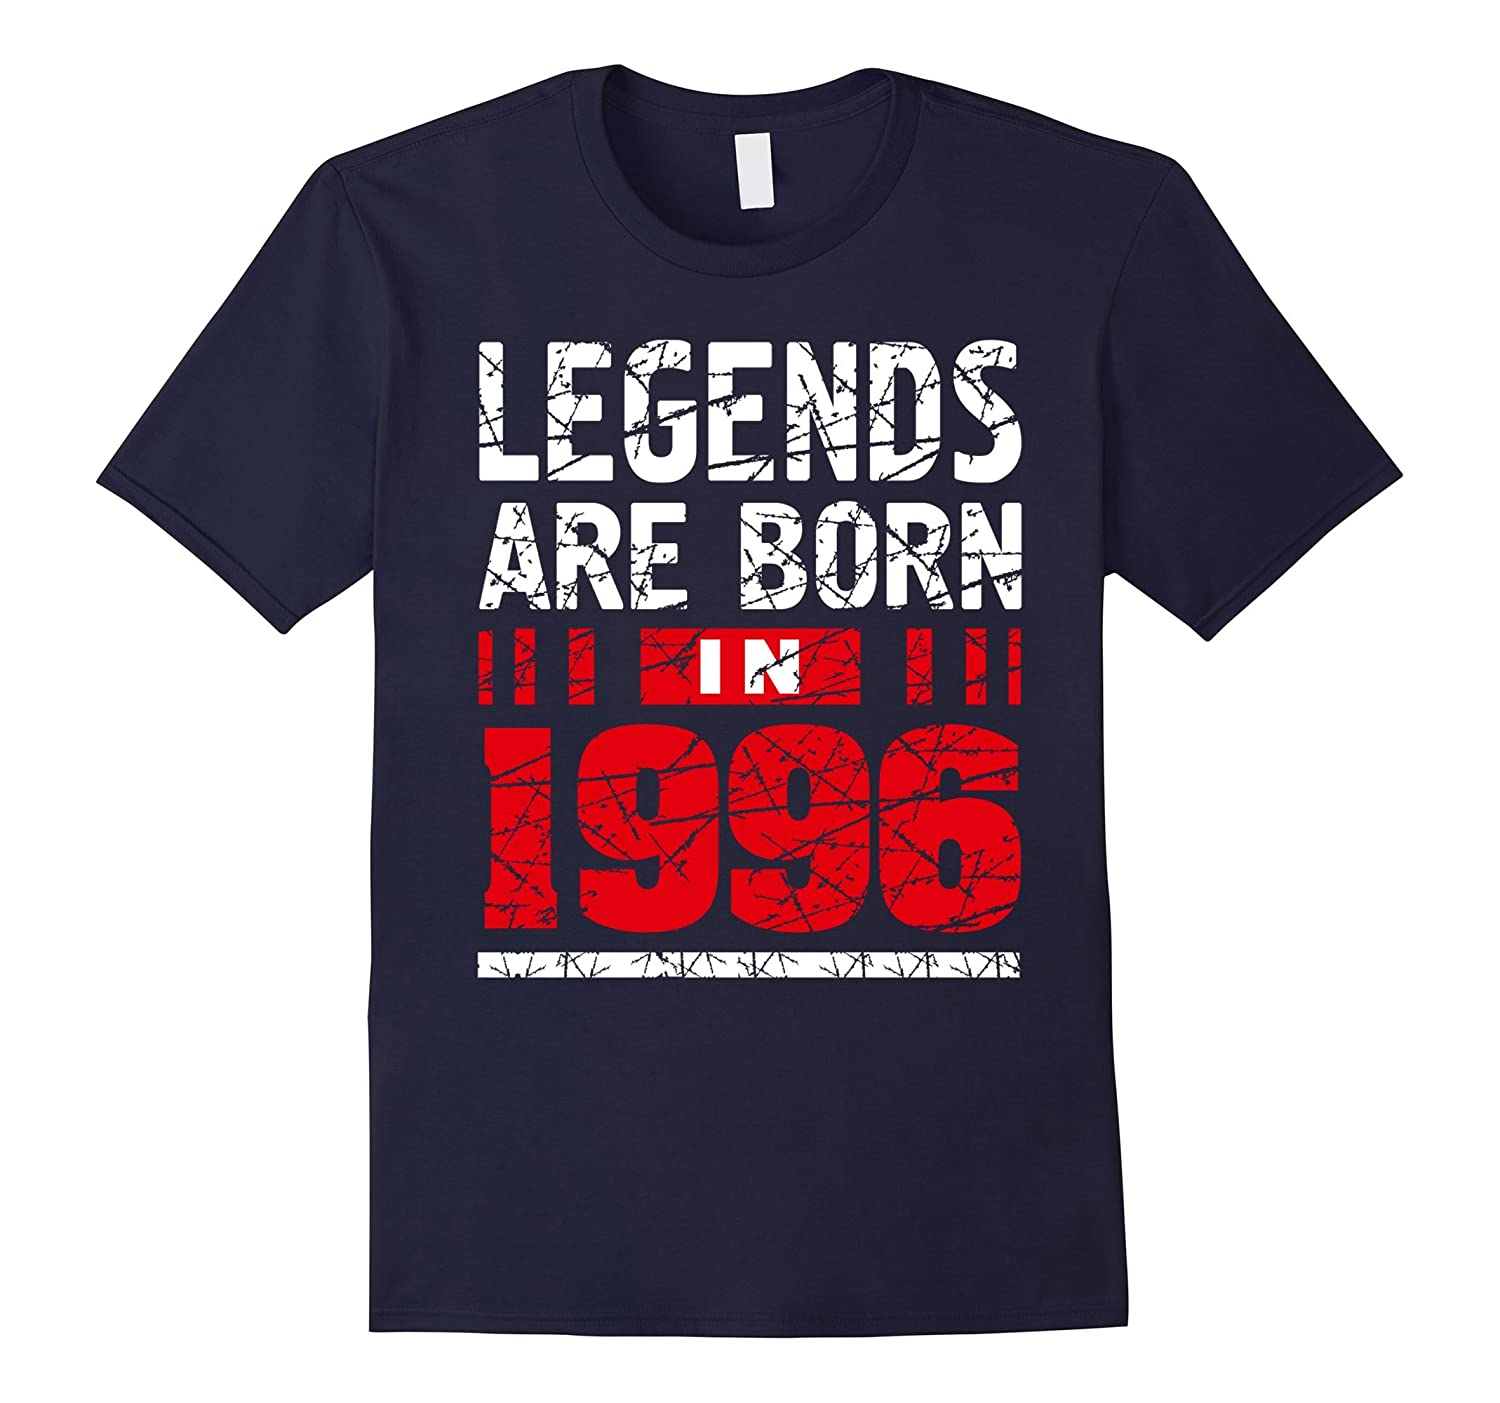 21 Year Old Boy Shirt Gift Legends Are born in 1996 Cool Tee